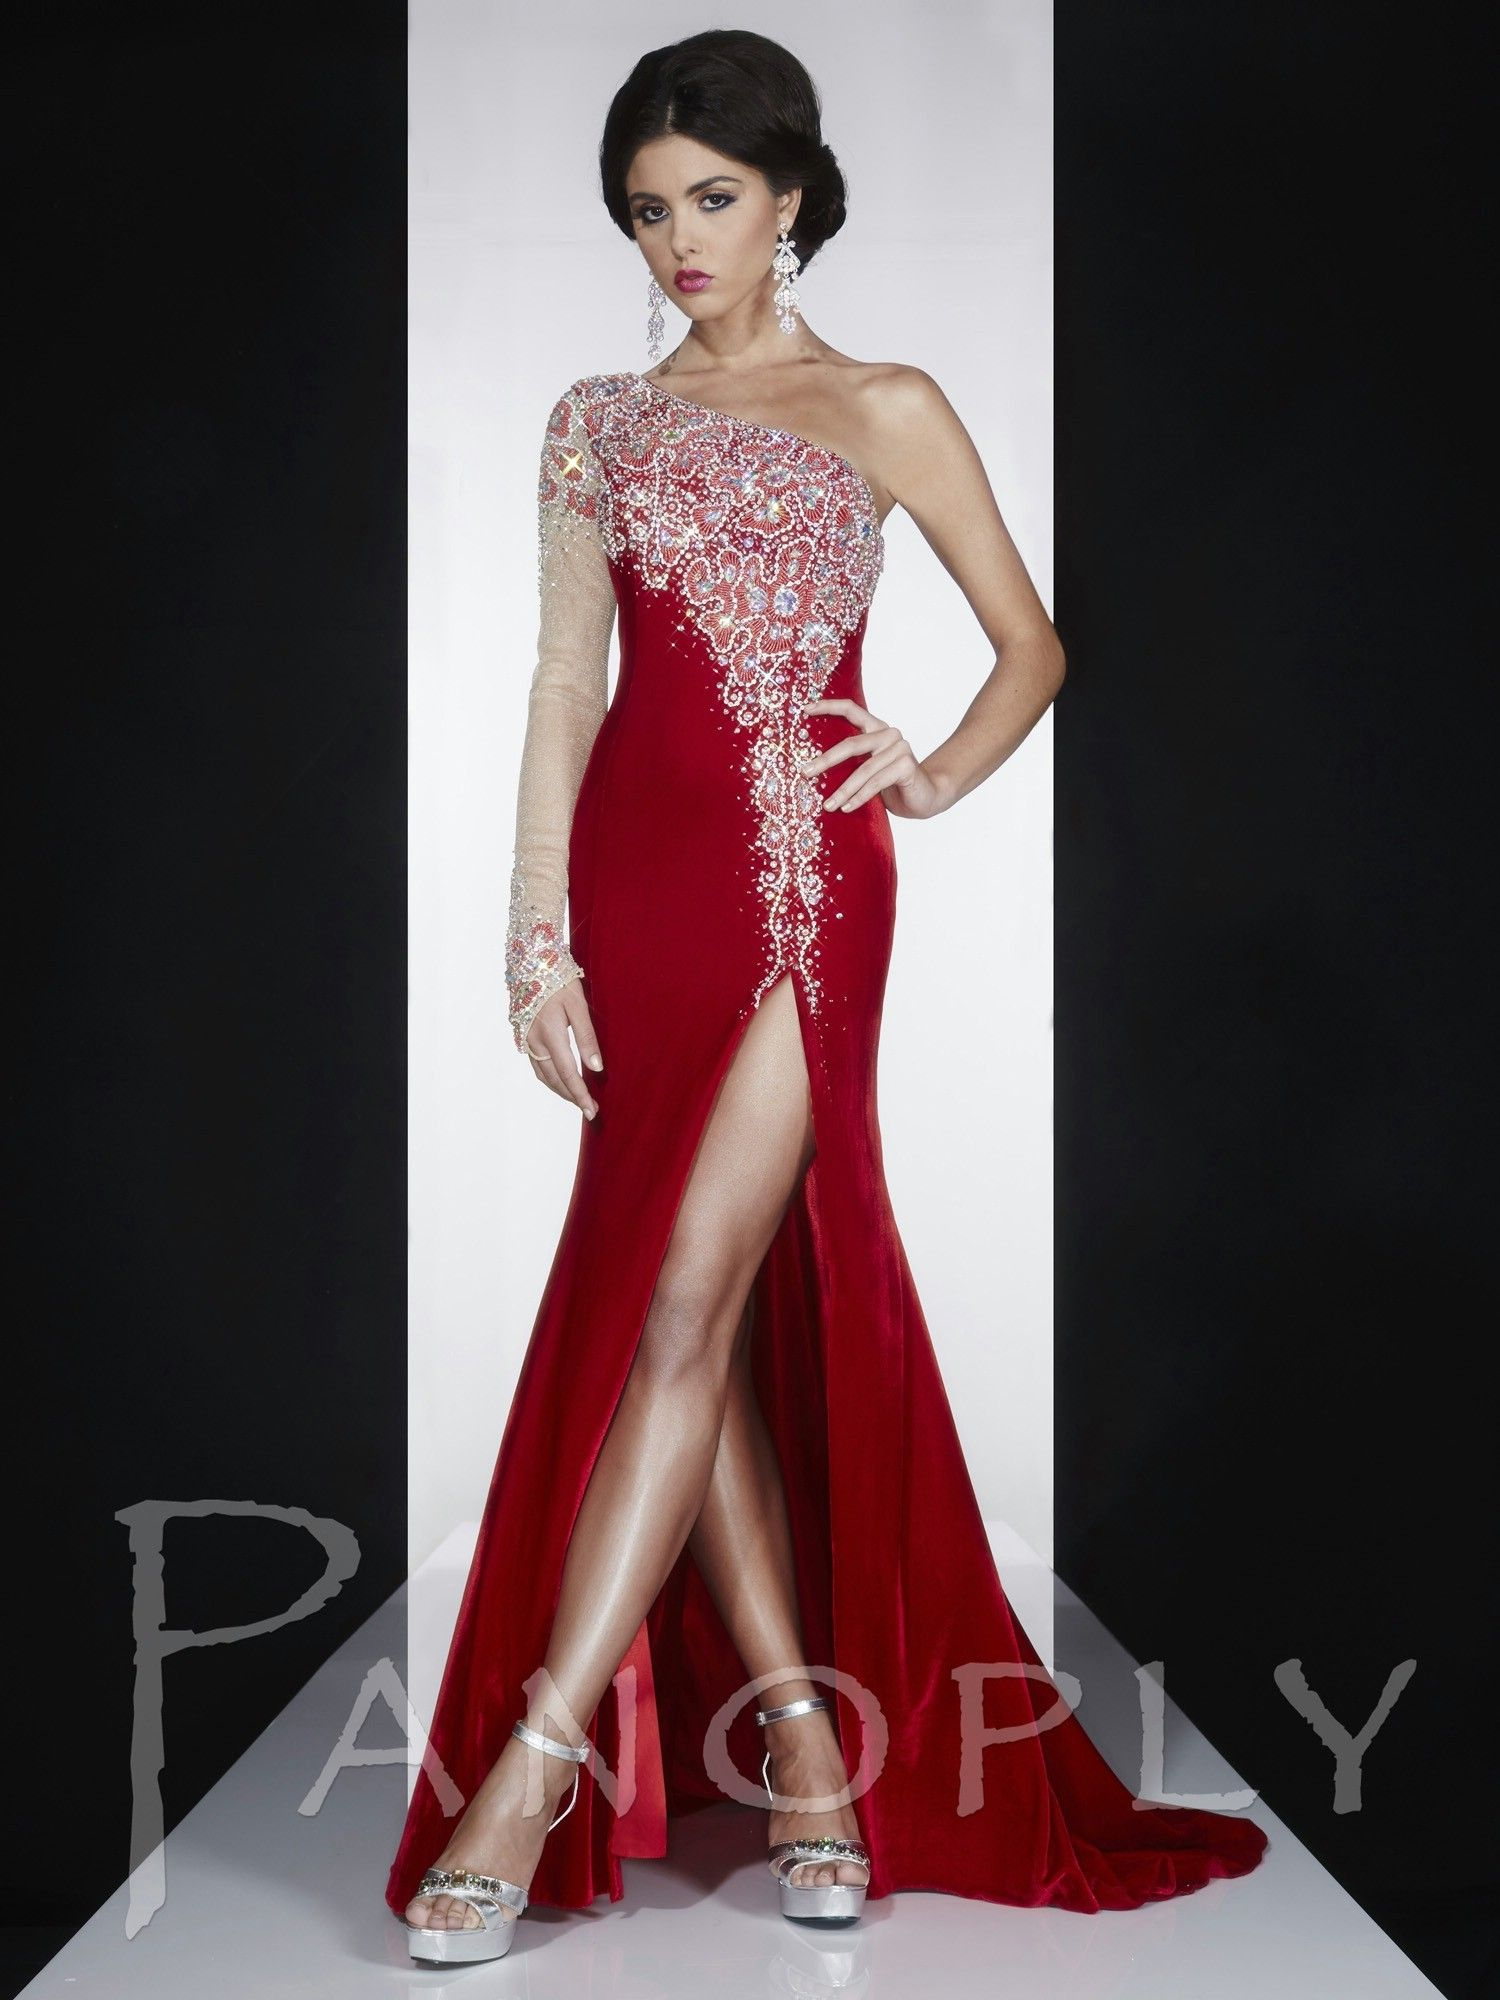 Panoply style v jersey velvet pageant dresses